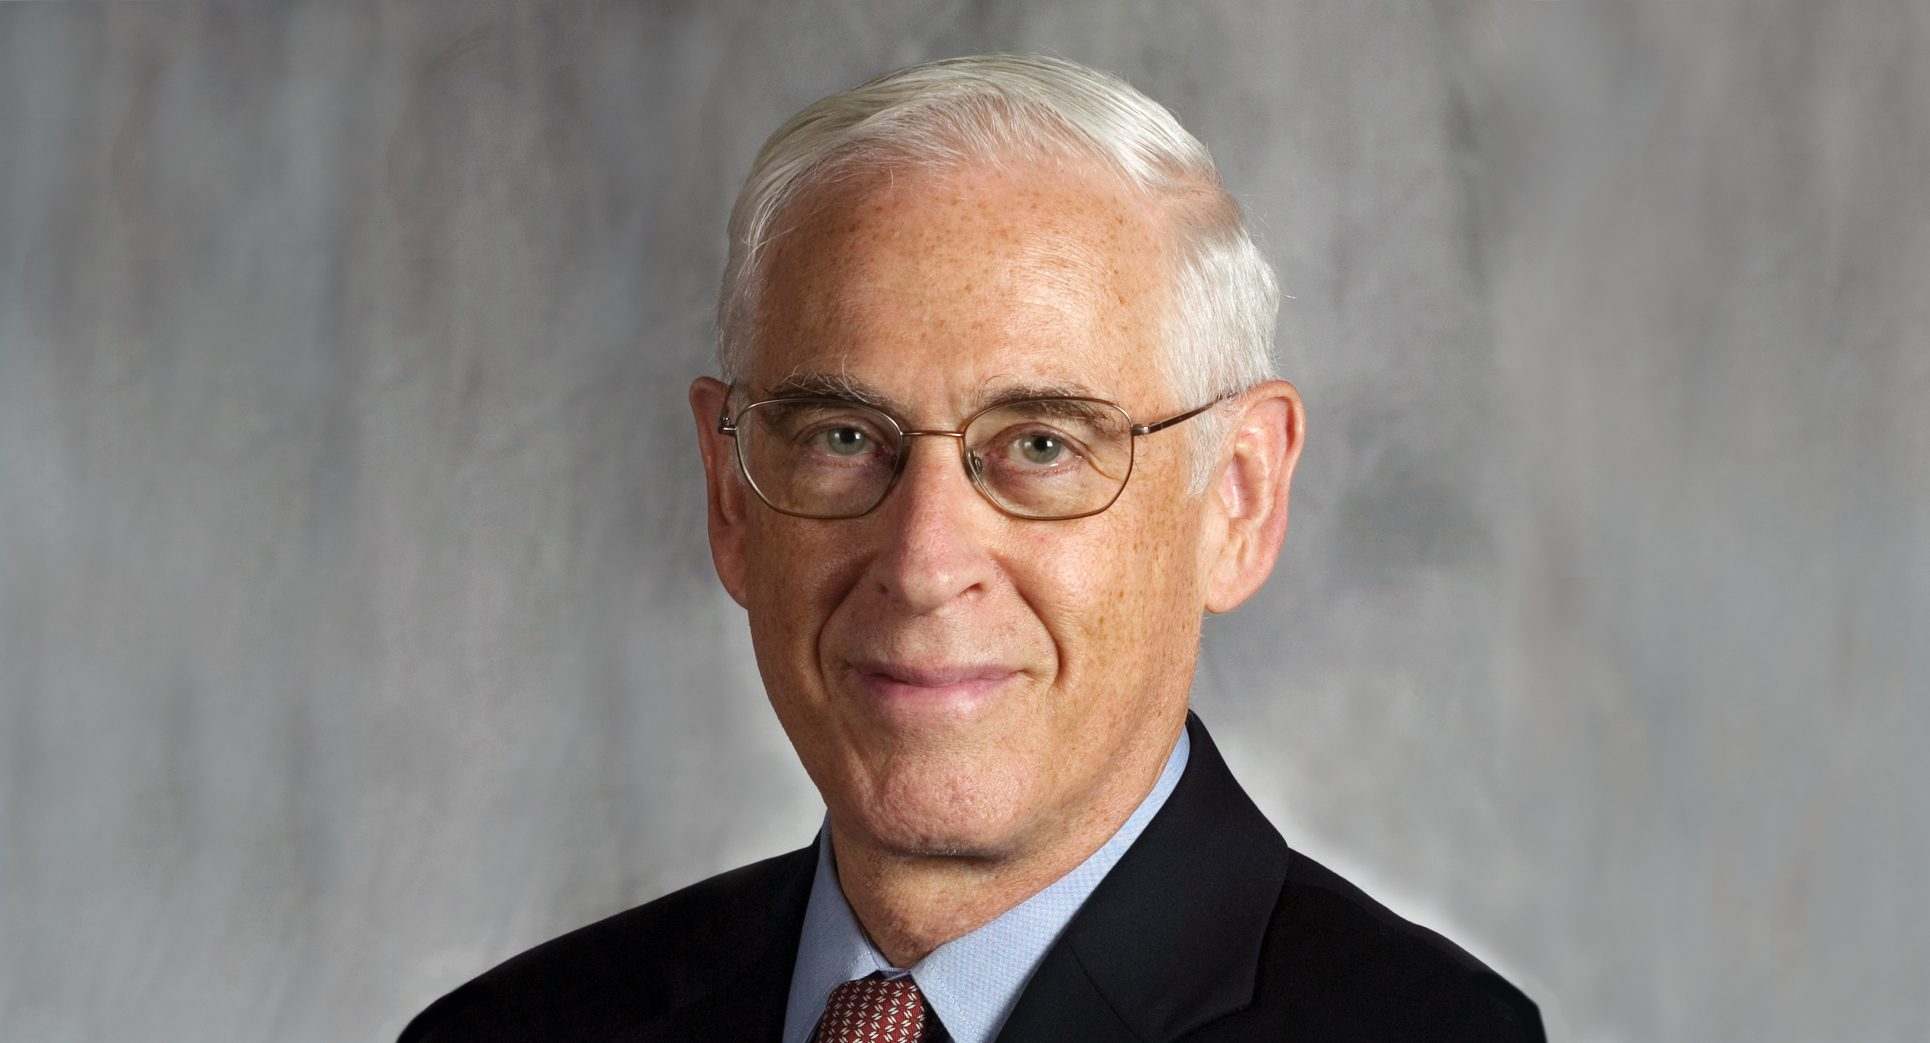 John Mendelsohn, M.D., former MD Anderson president, has received the 2018 Tang Prize in Biopharmaceutical Science.